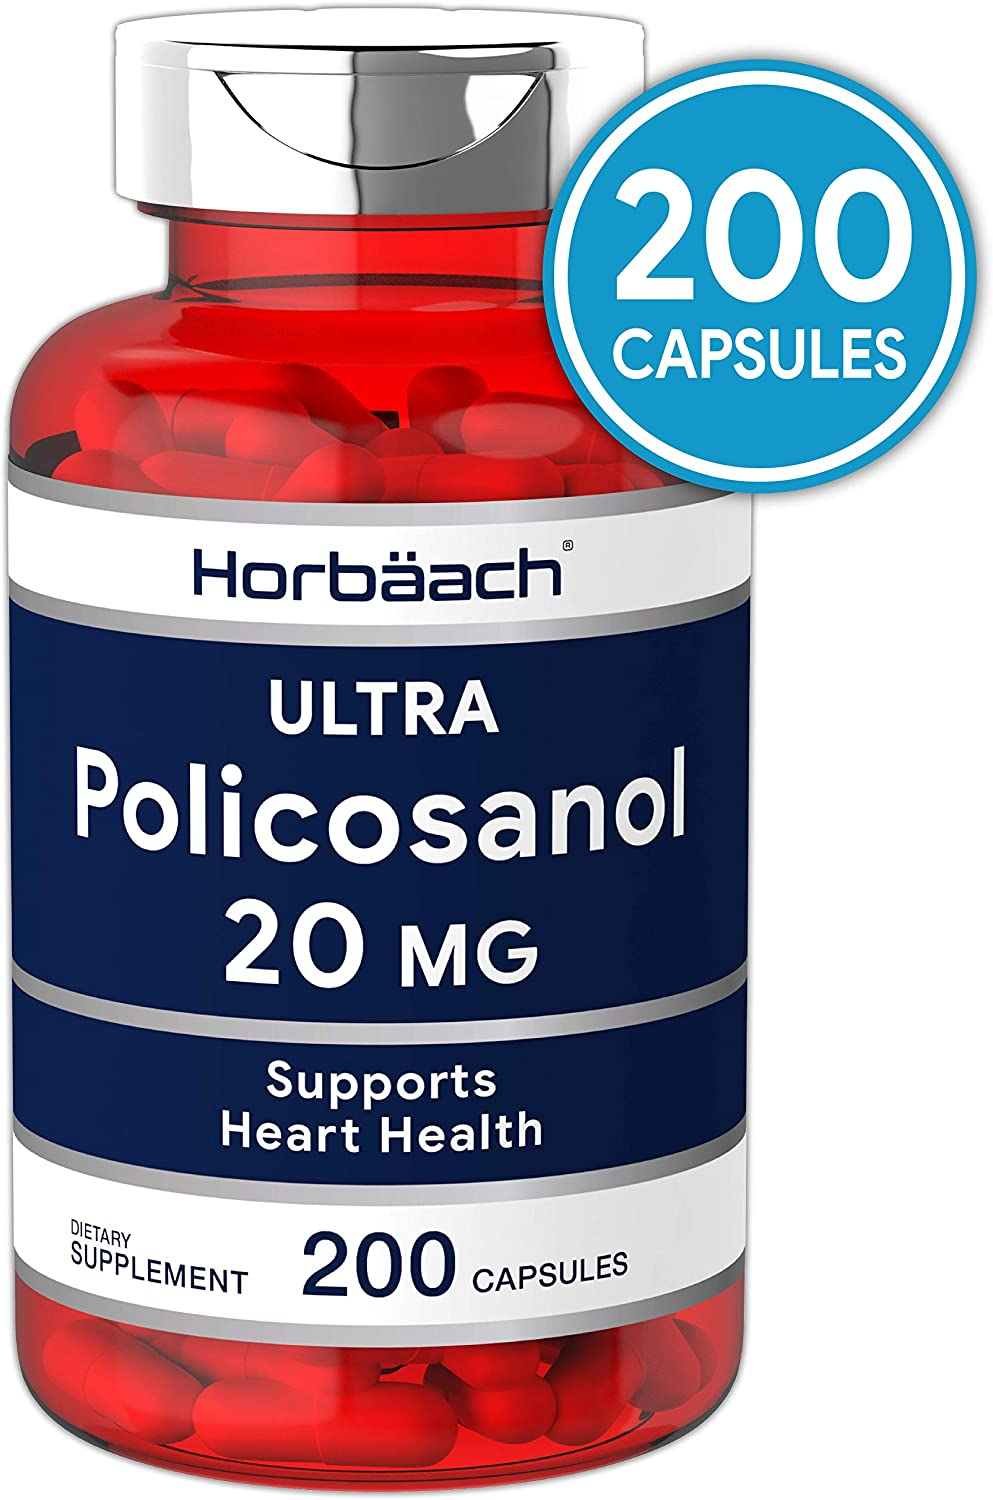 Policosanol 20mg | 200 Capsules | Supports Cholesterol and Heart Health | Non-GMO and Gluten Free | by Horbaach